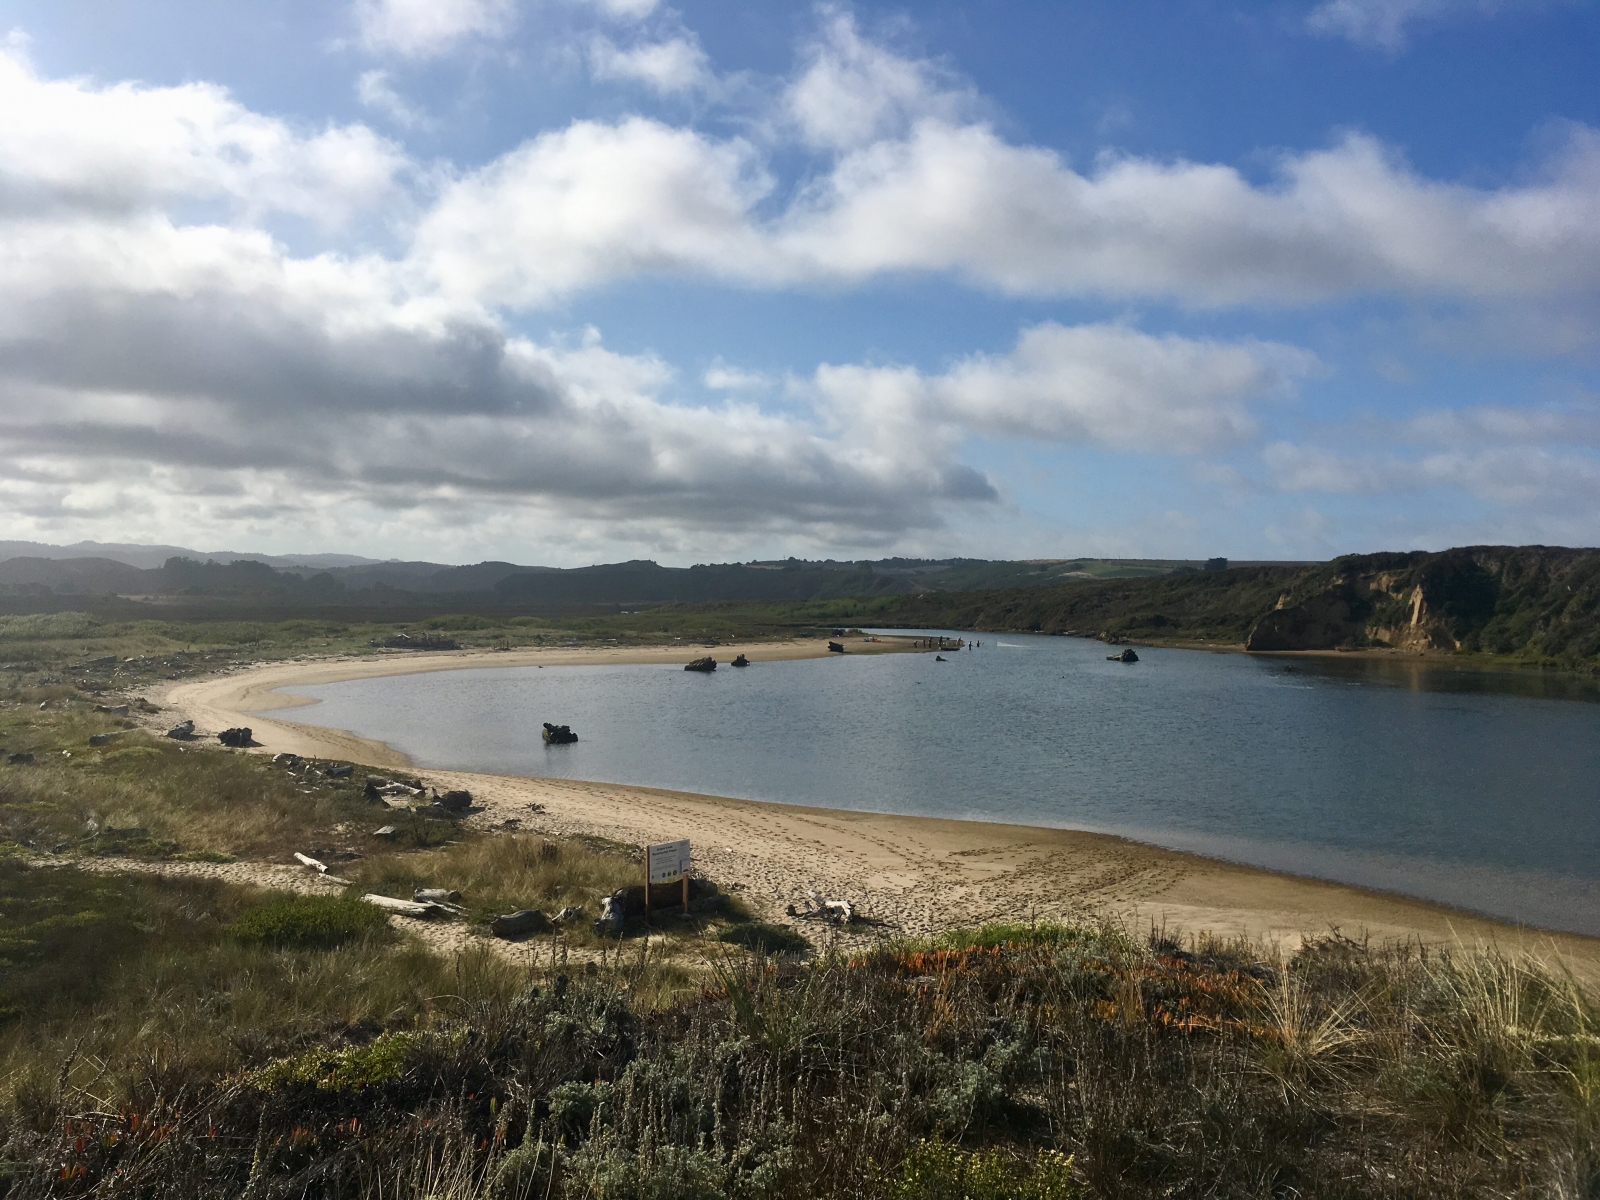 View looking down from Highway 1 into the mouth of Butano/Pescadero Marsh - September 2019